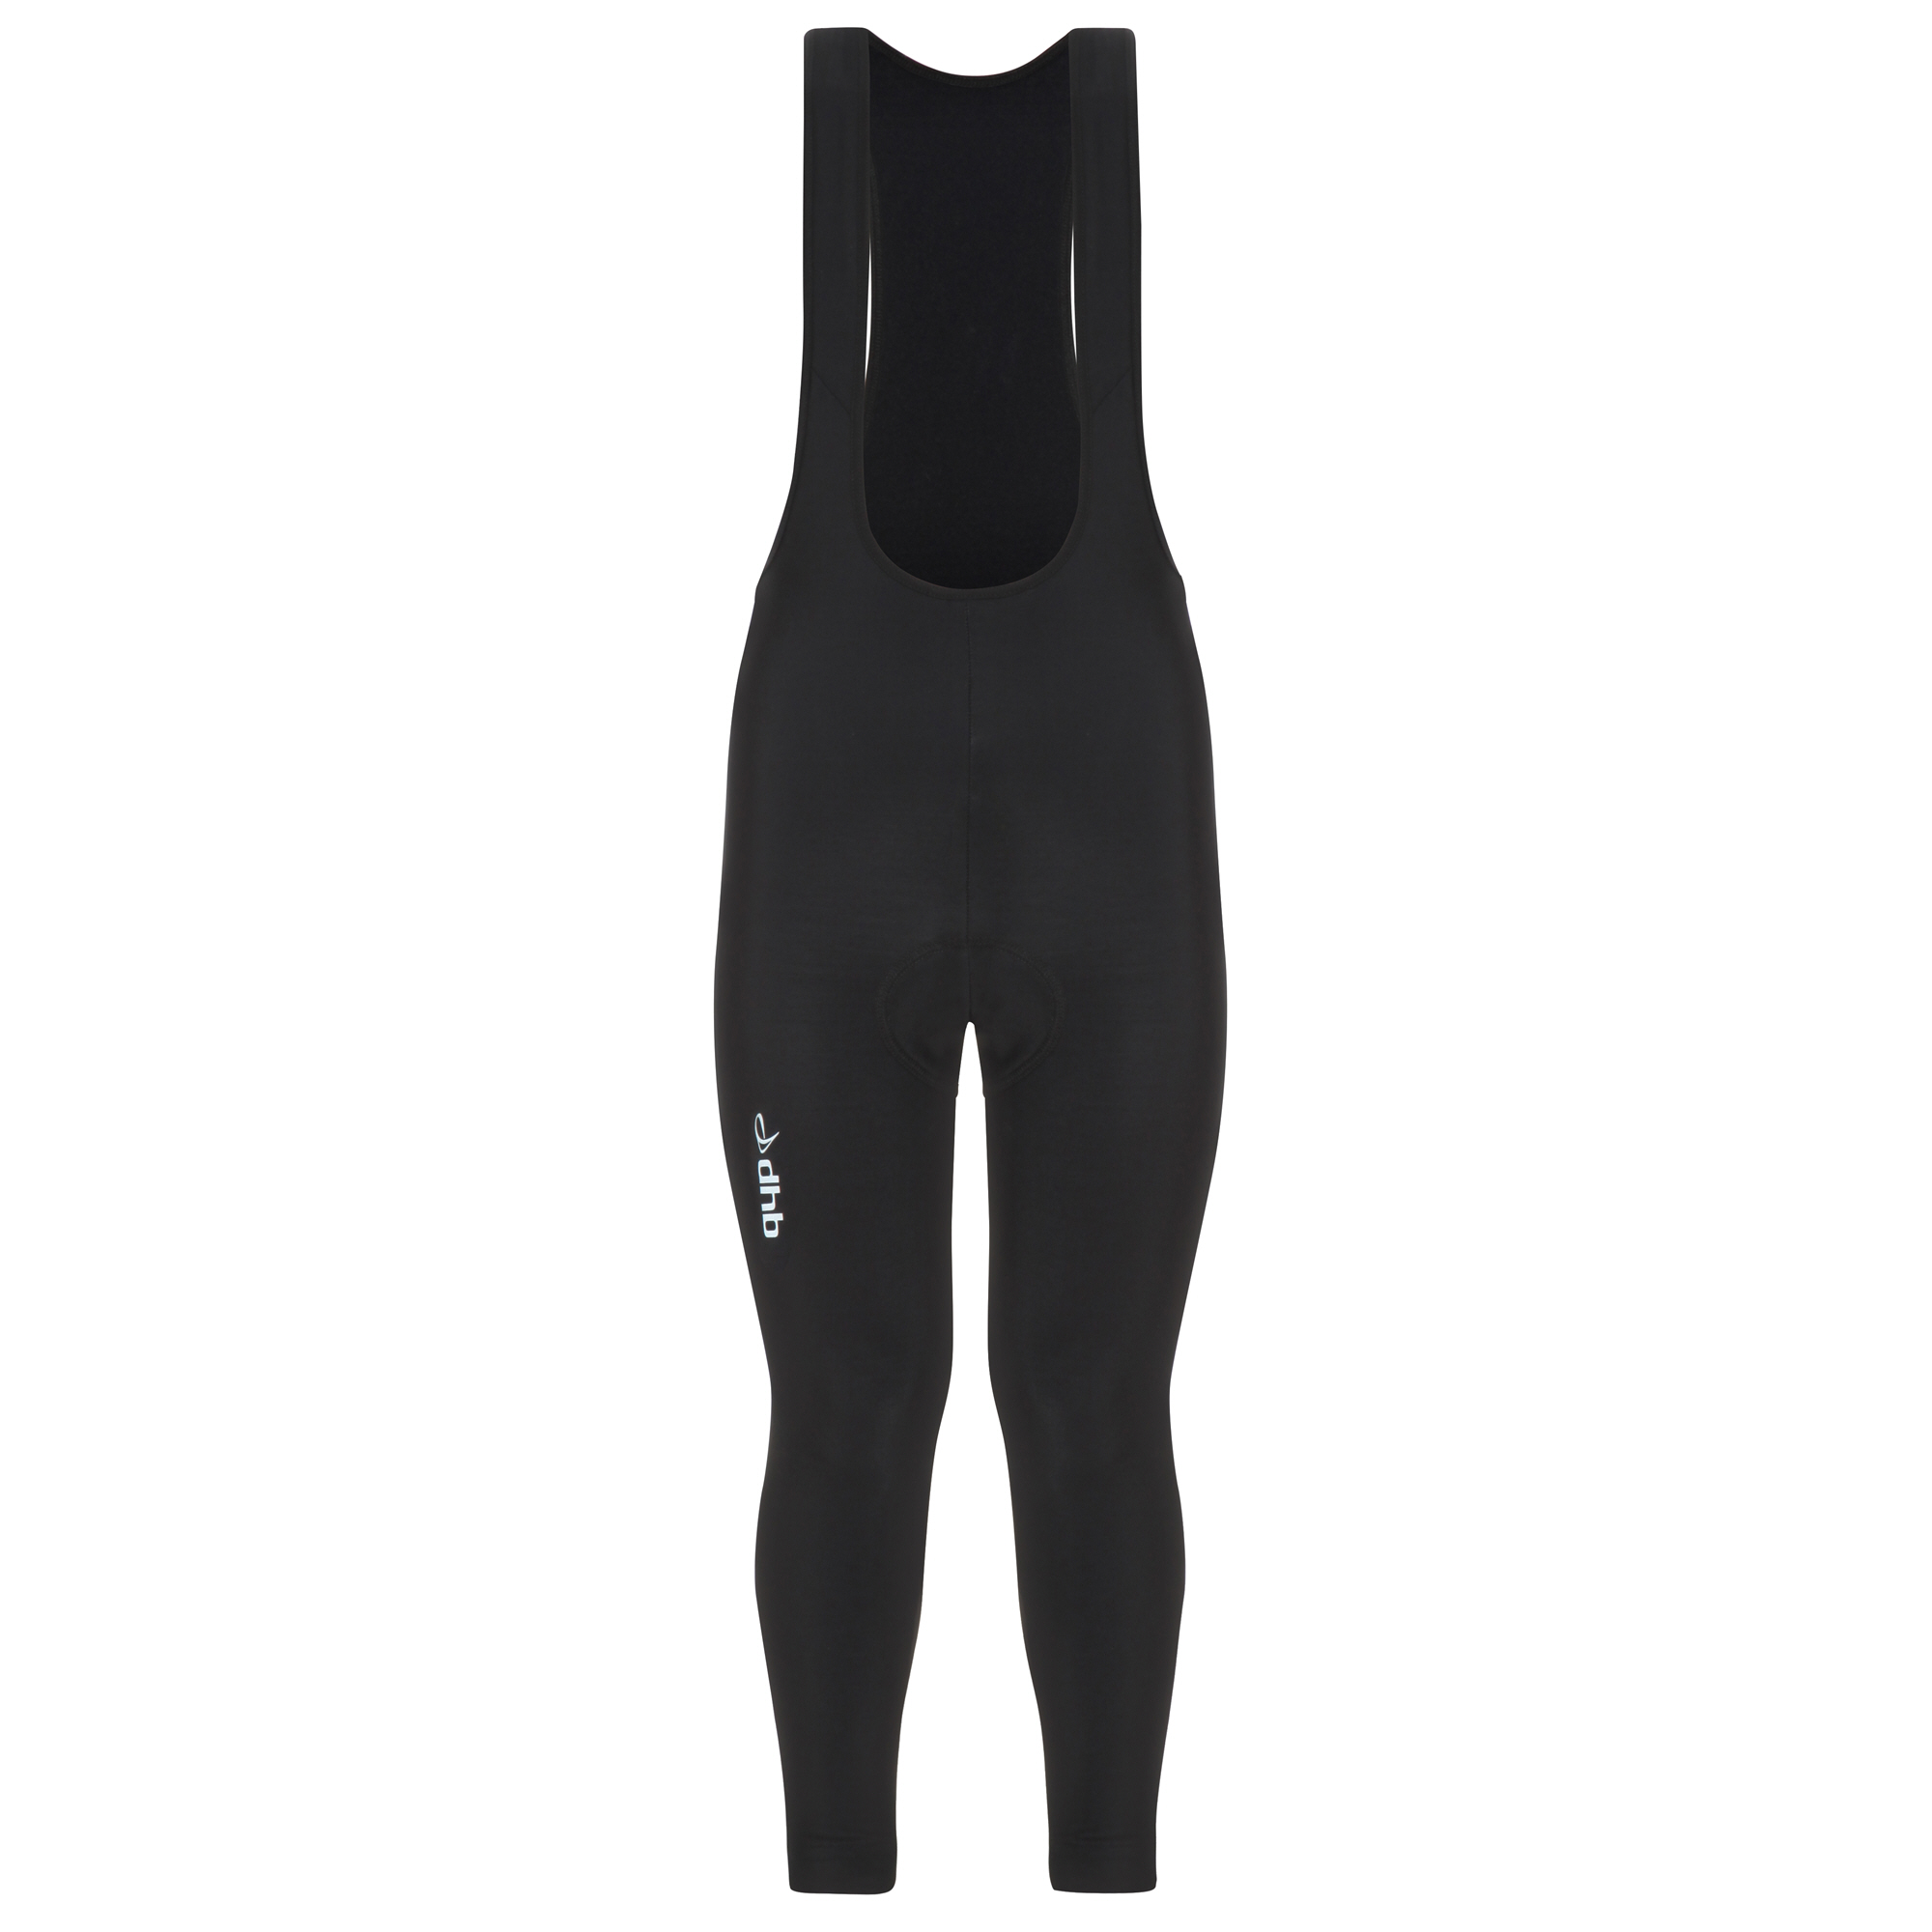 dhb Bib-tights - Barn | item_misc